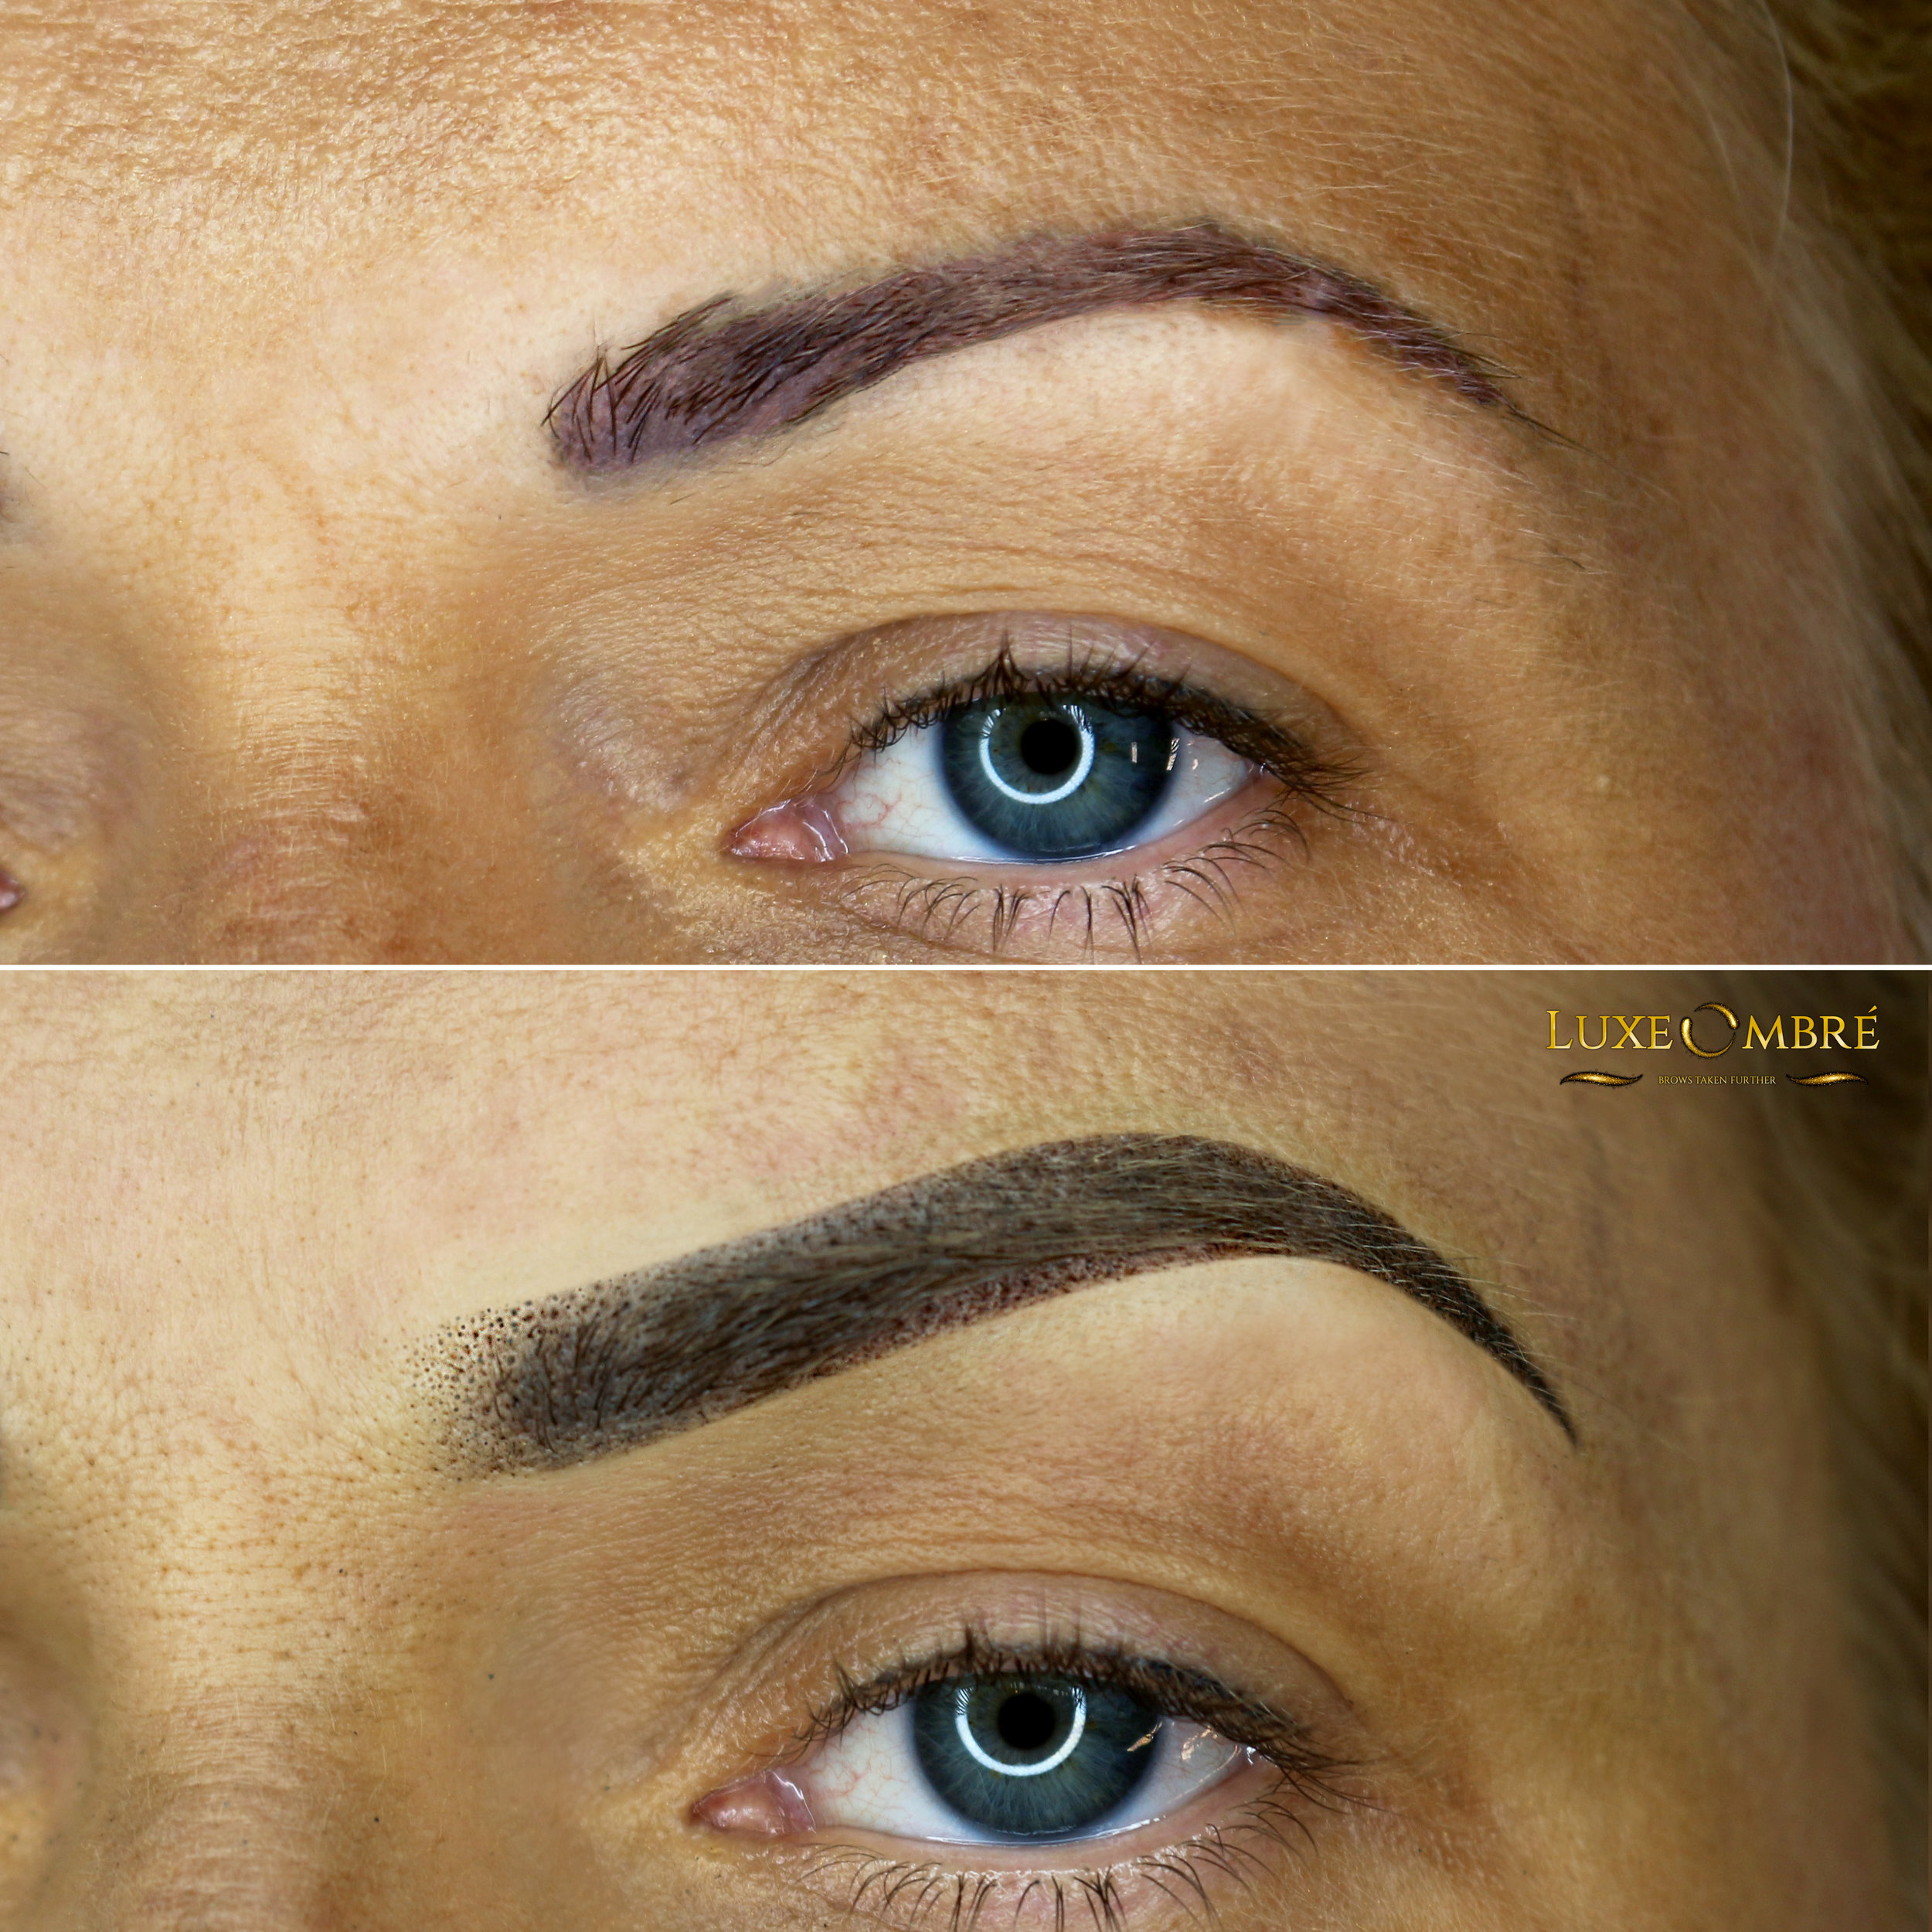 LuxeOmbre brows created on top of old microblading/pigmentation. The shape is changed and the end-result looks natural.